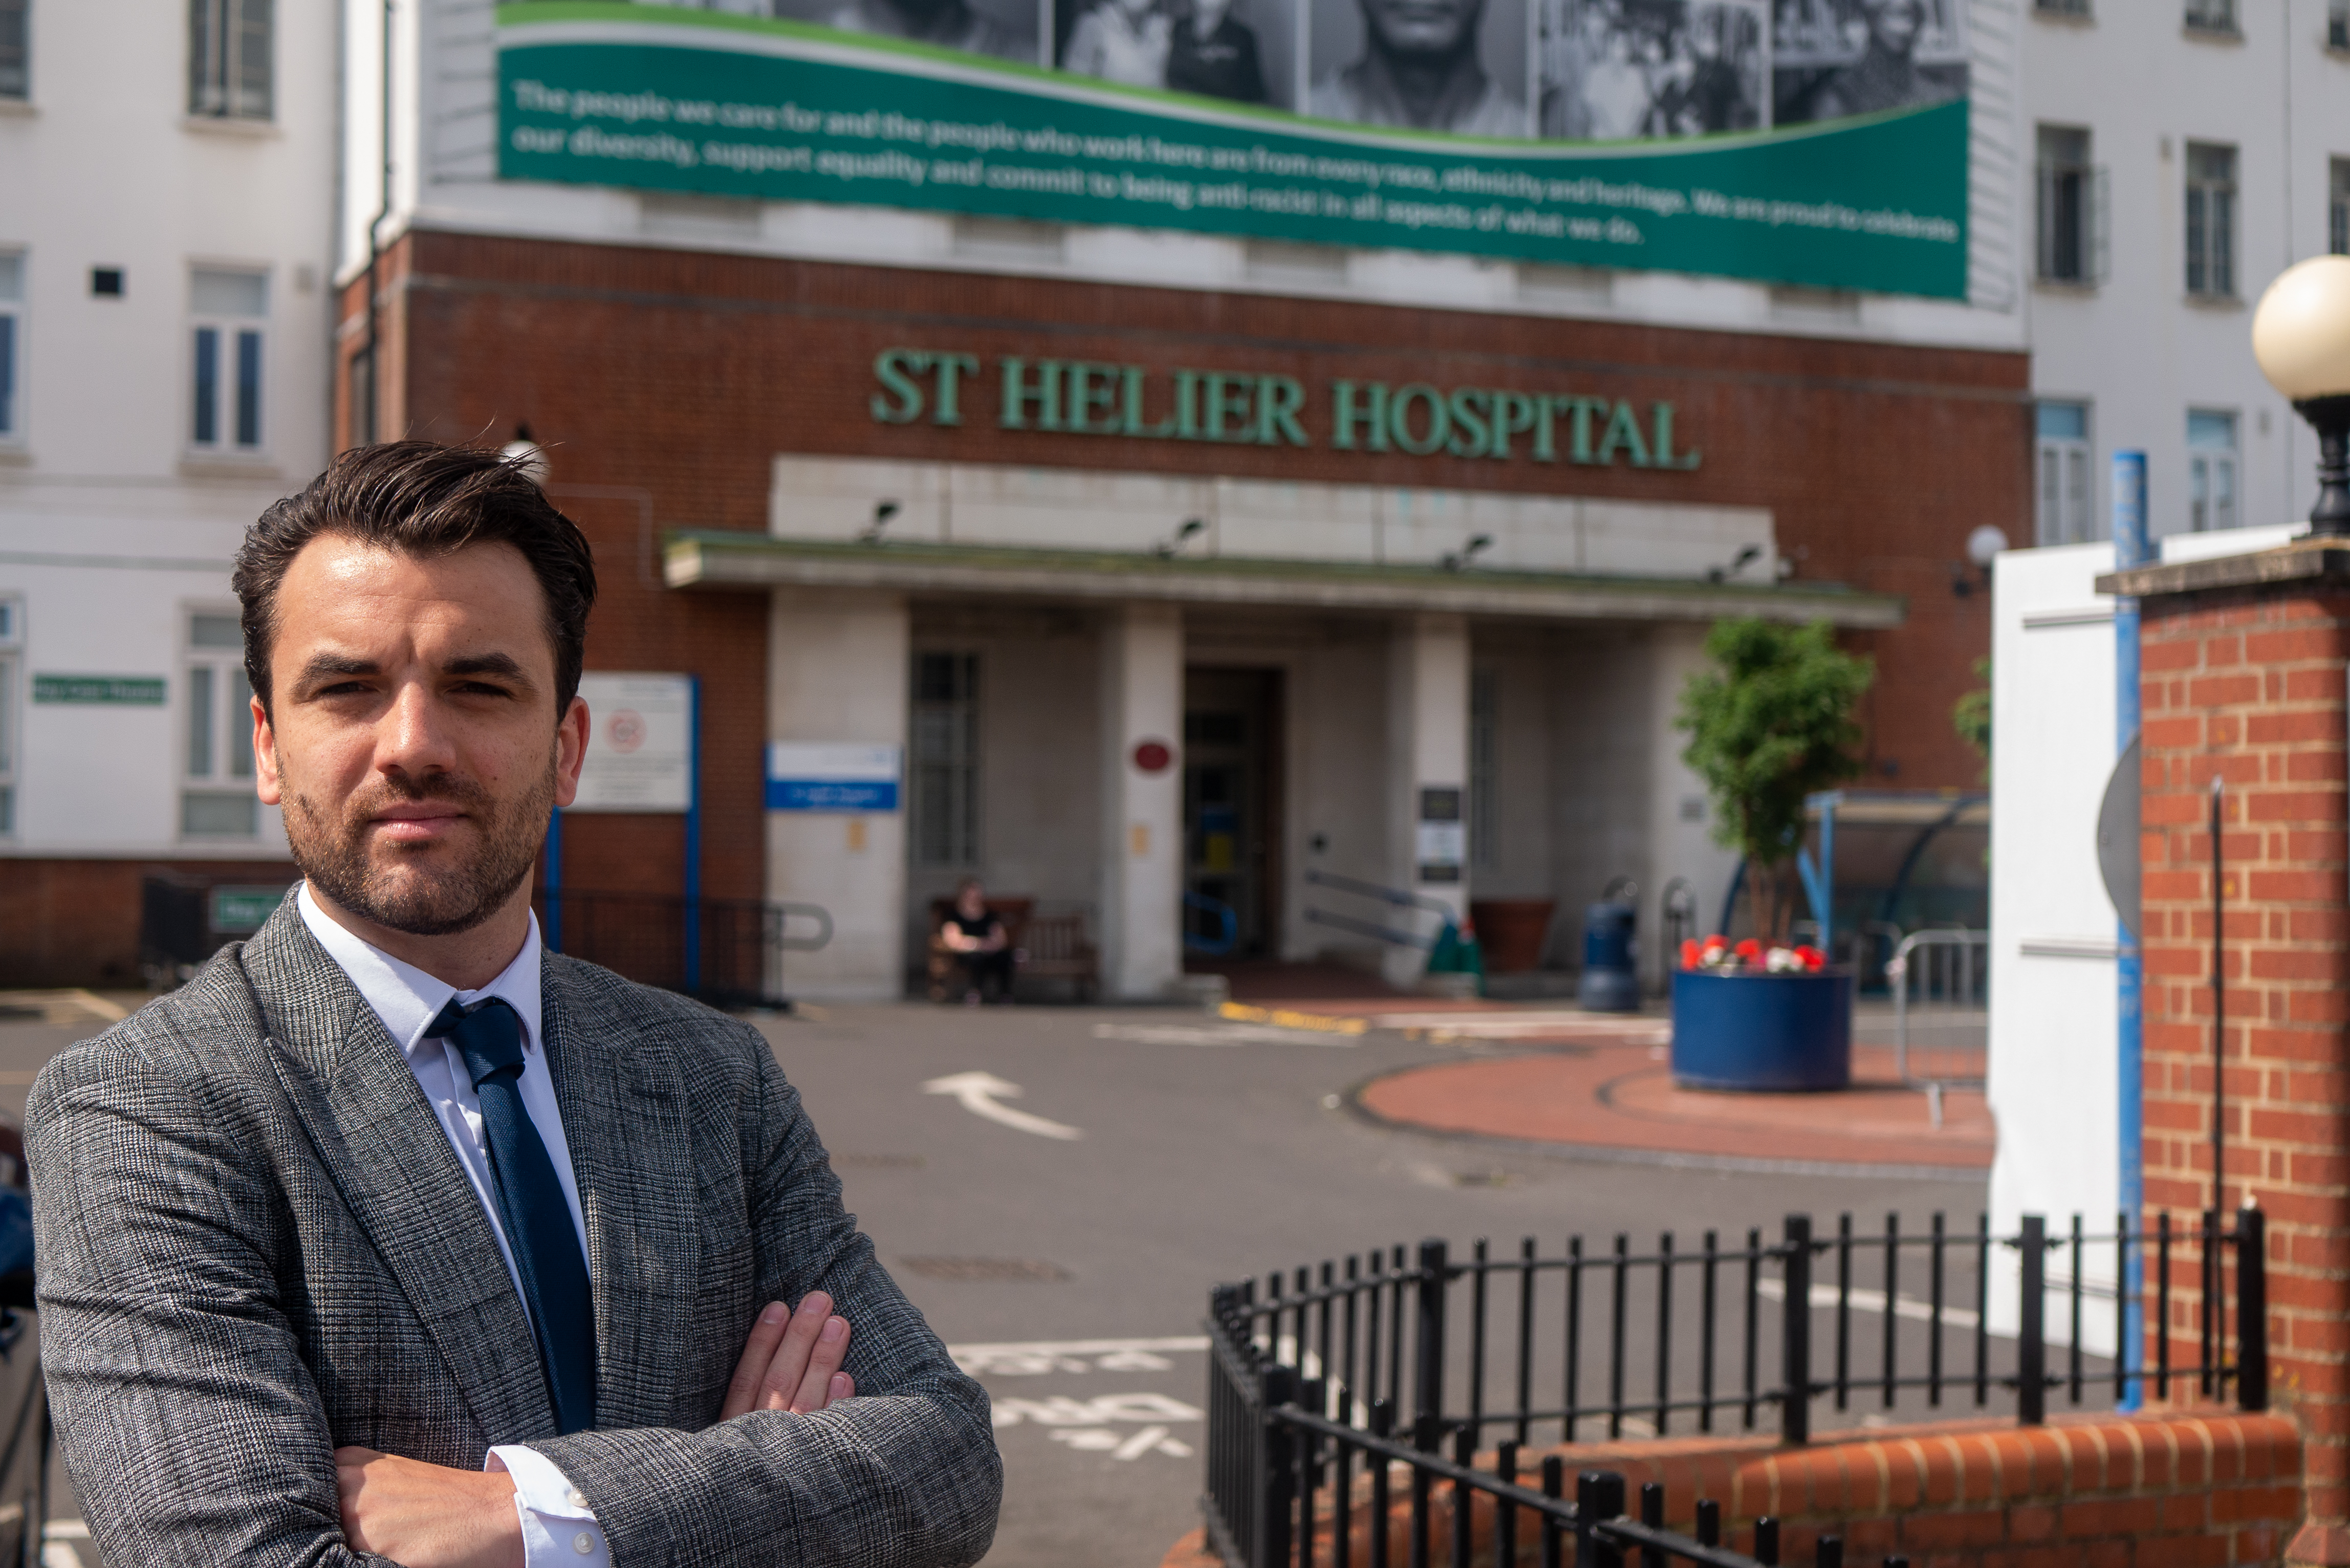 Supporting St. Helier Hospital